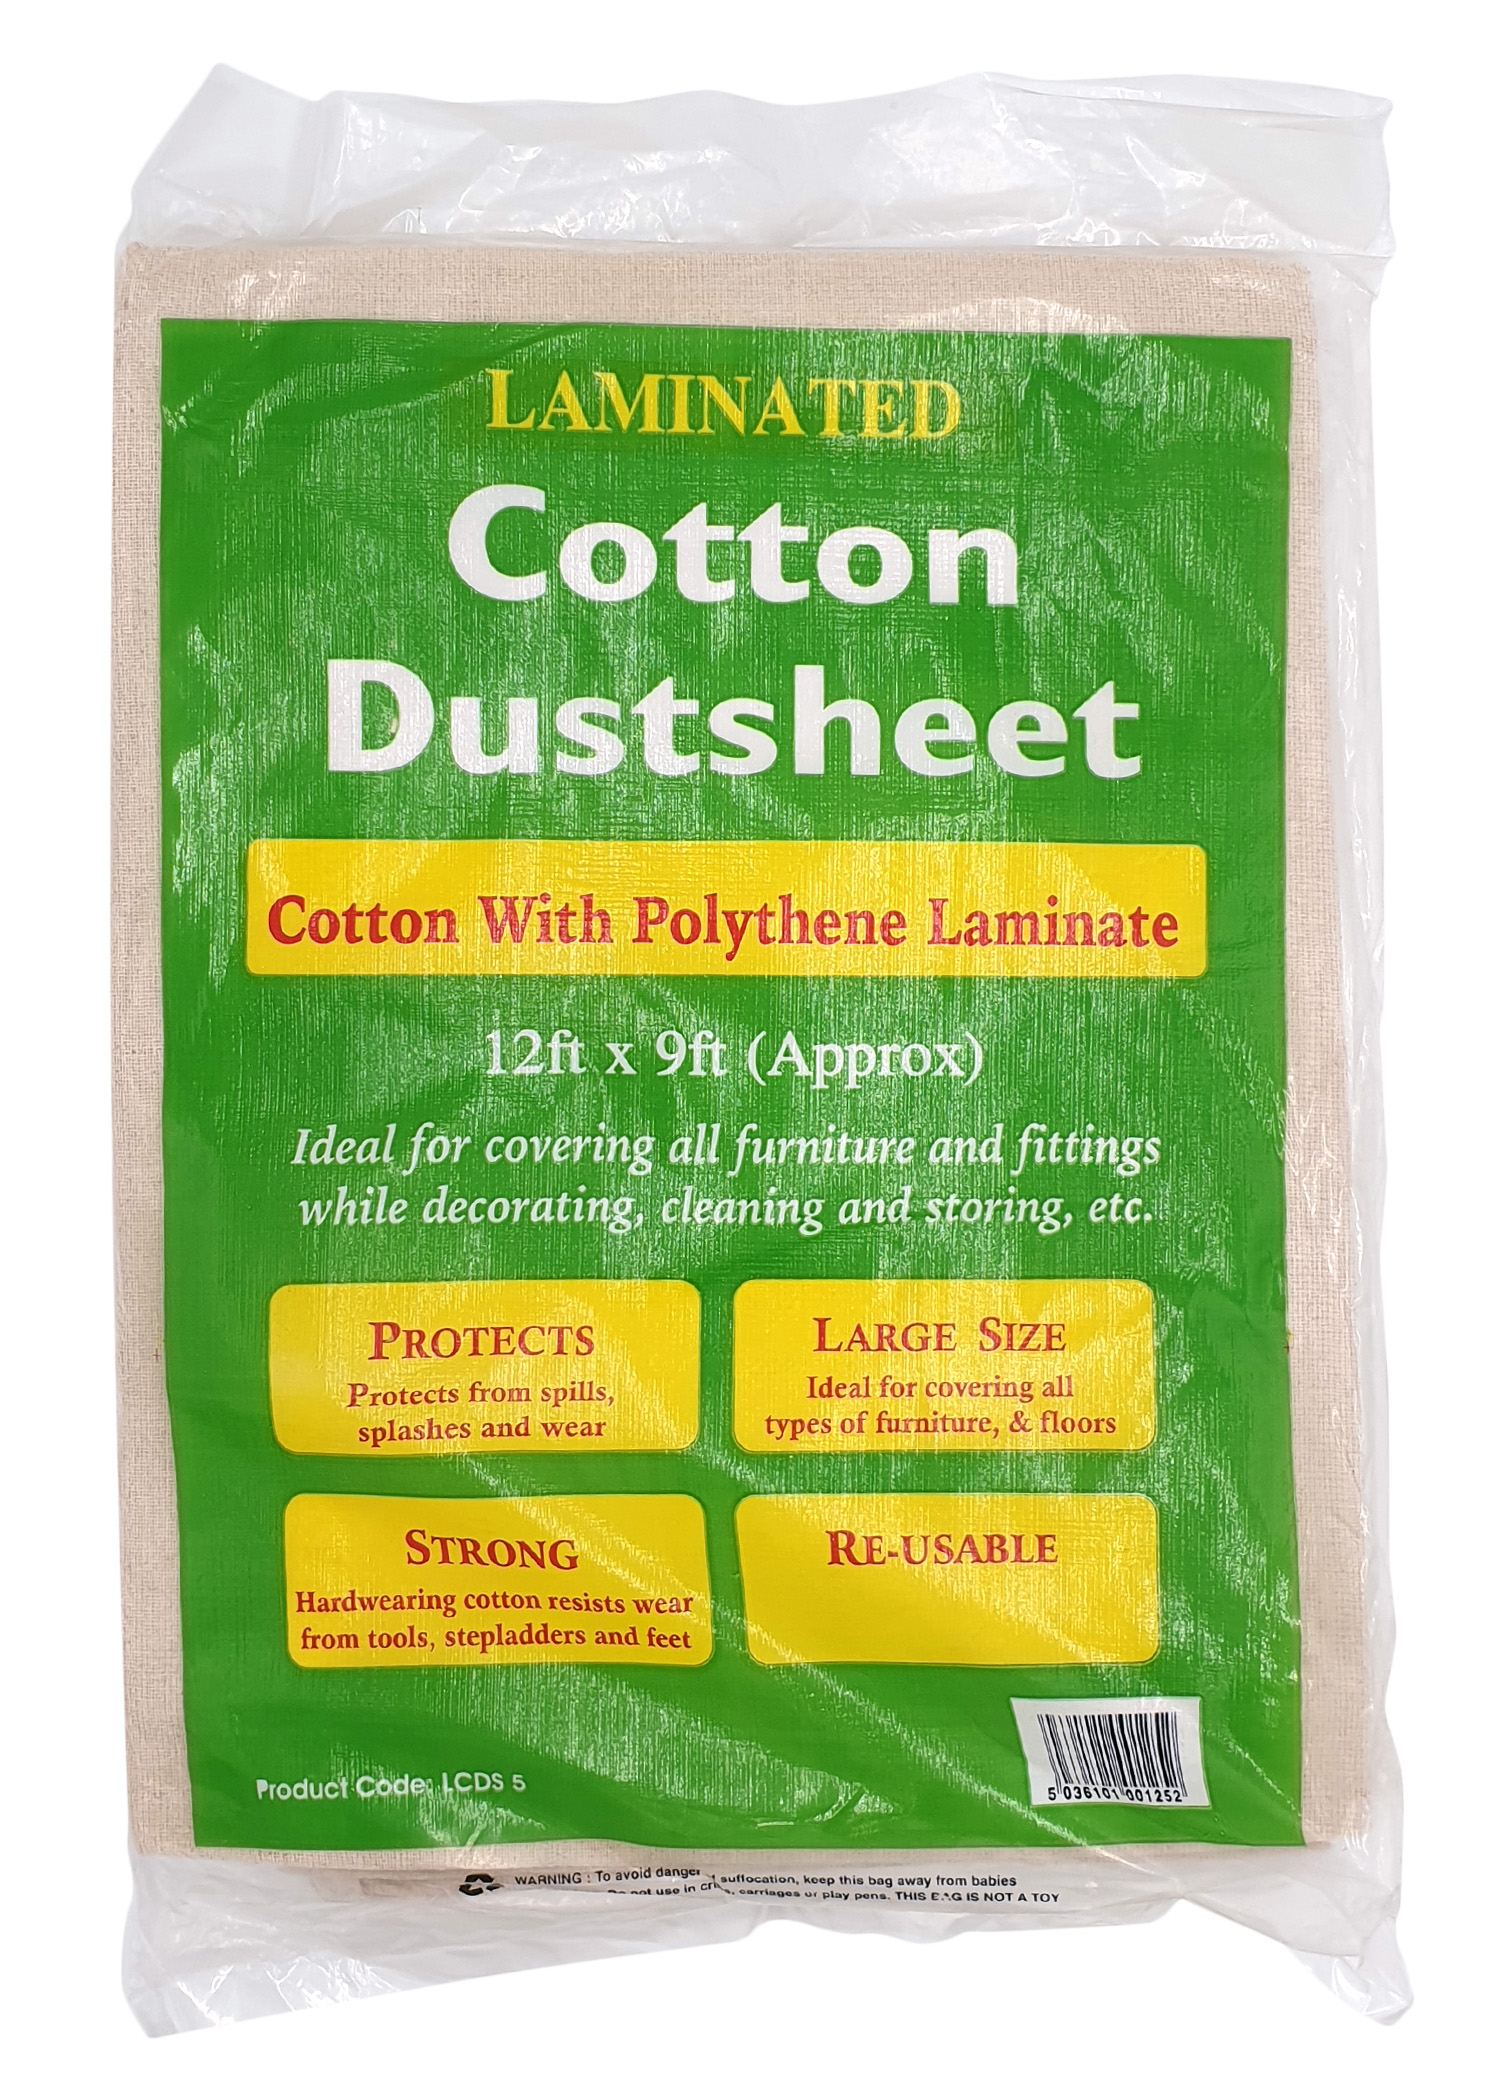 A folded beige cotton dustsheet wrapped in green Dosco packaging